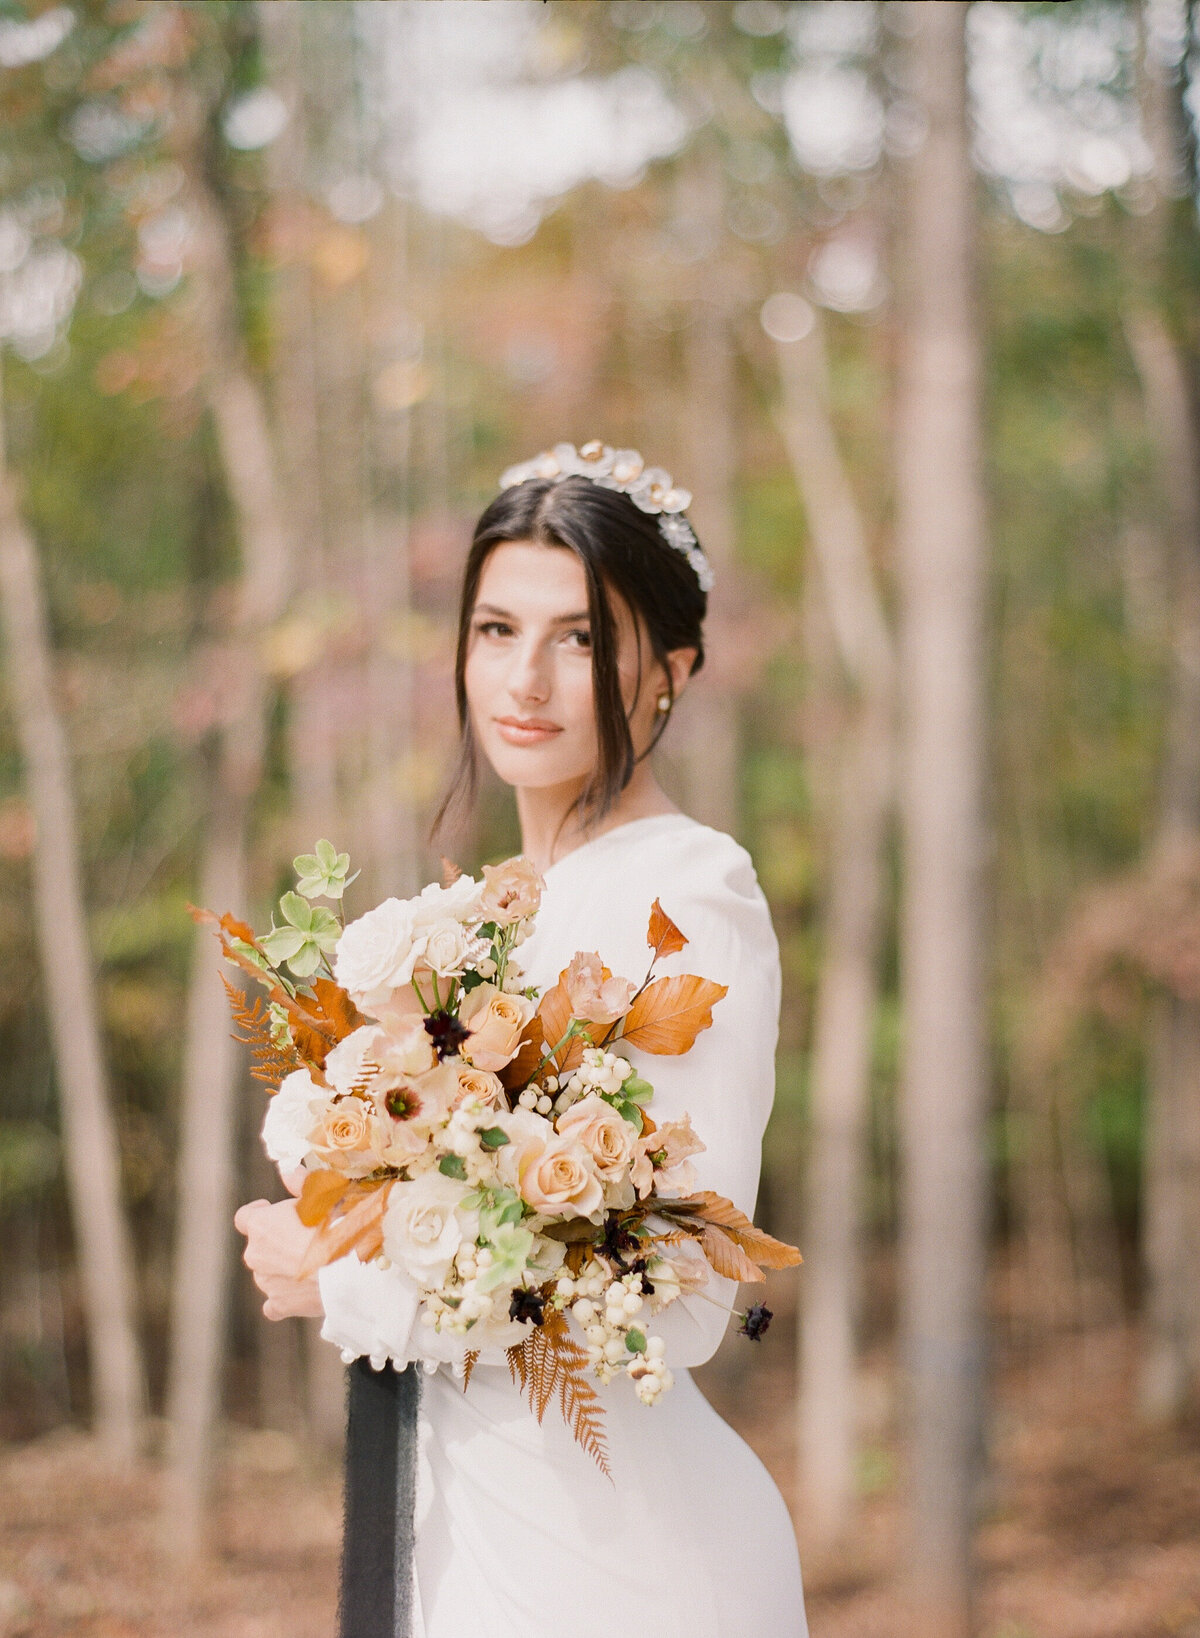 Carolina Grove Bridal Portrait Photography, North Carolina 3